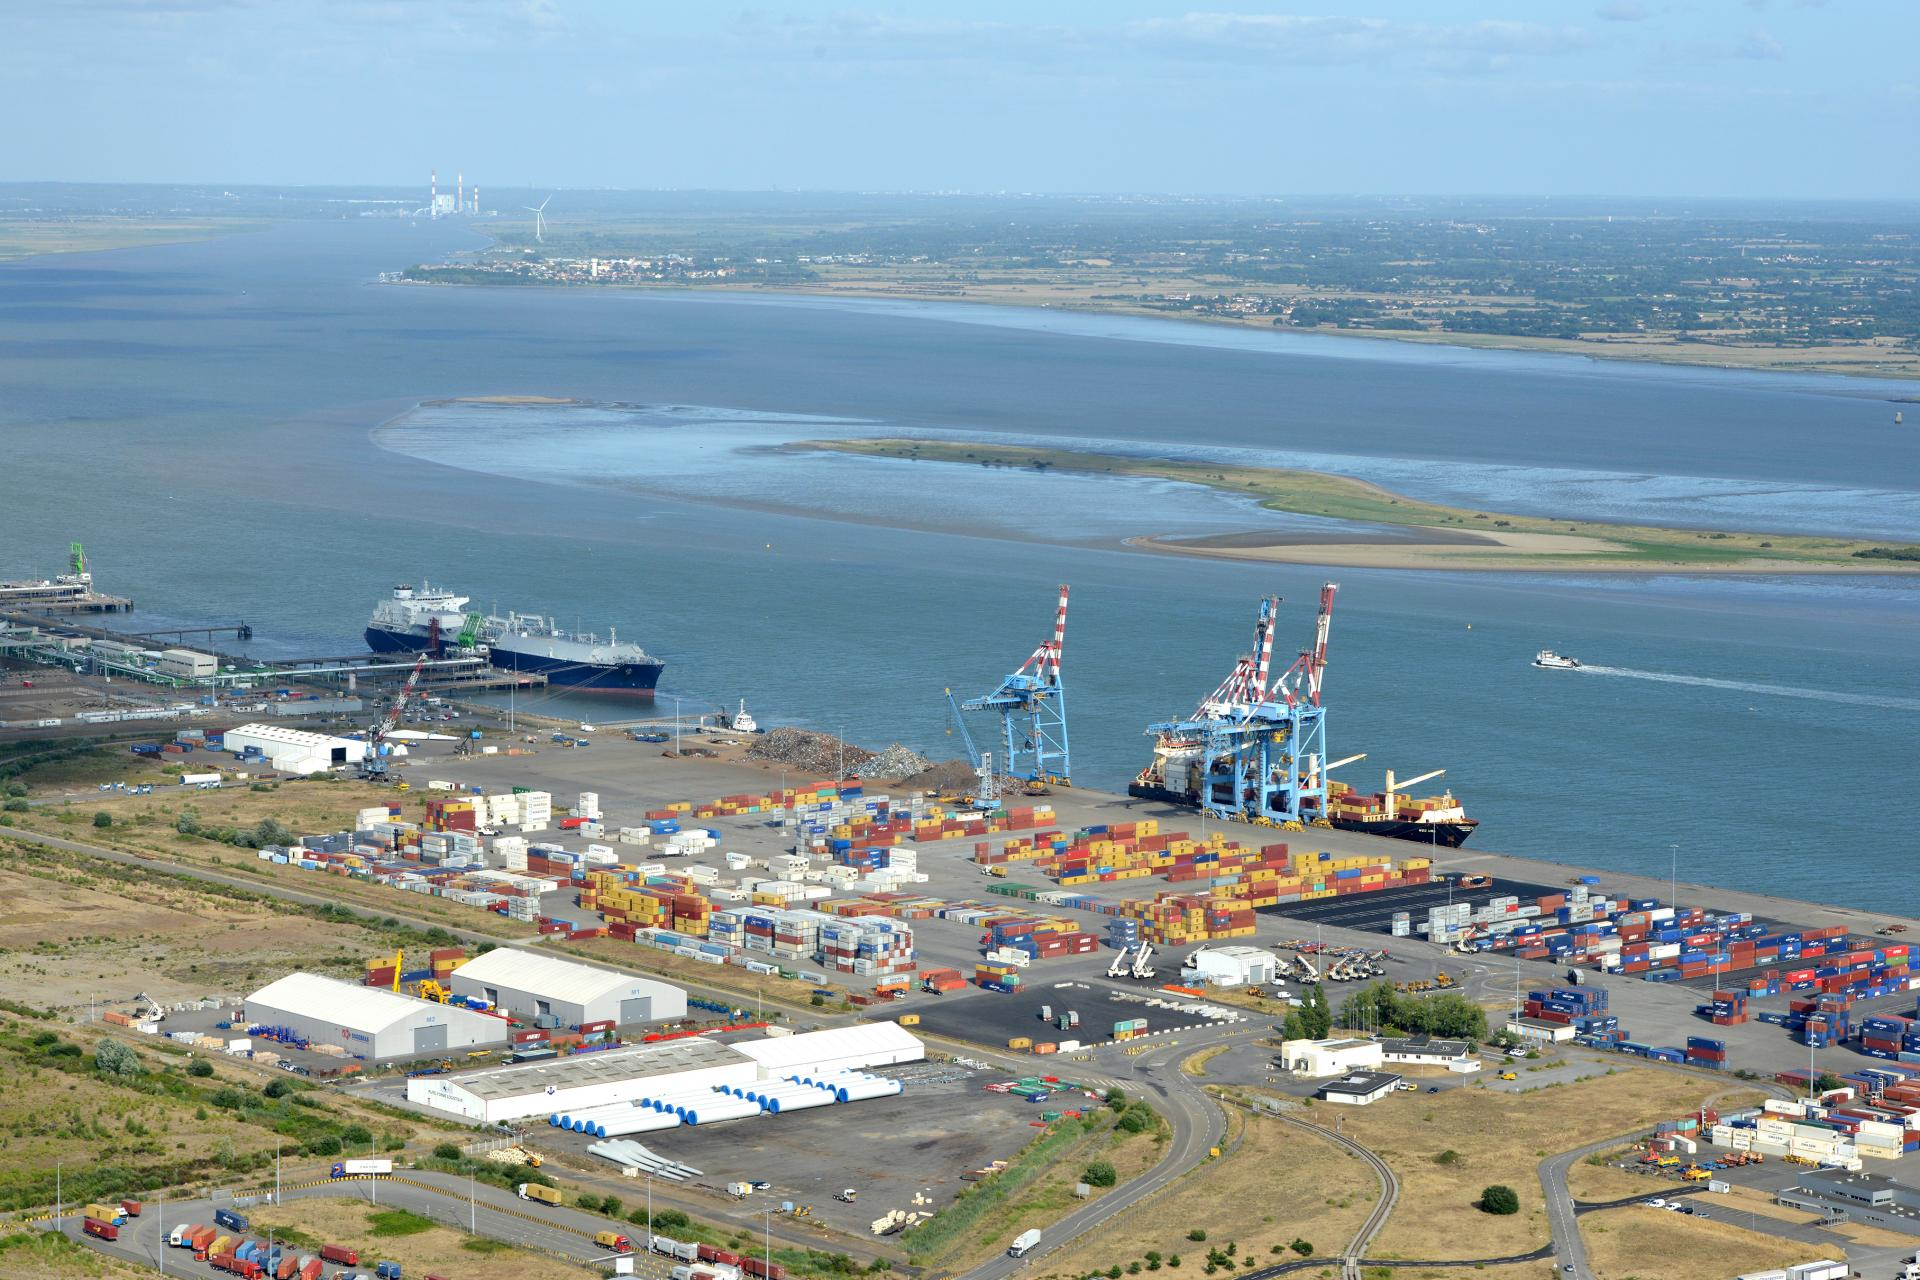 VISITE DU GRAND PORT MARITIME NANTES-SAINT-NAZAIRE PORT©